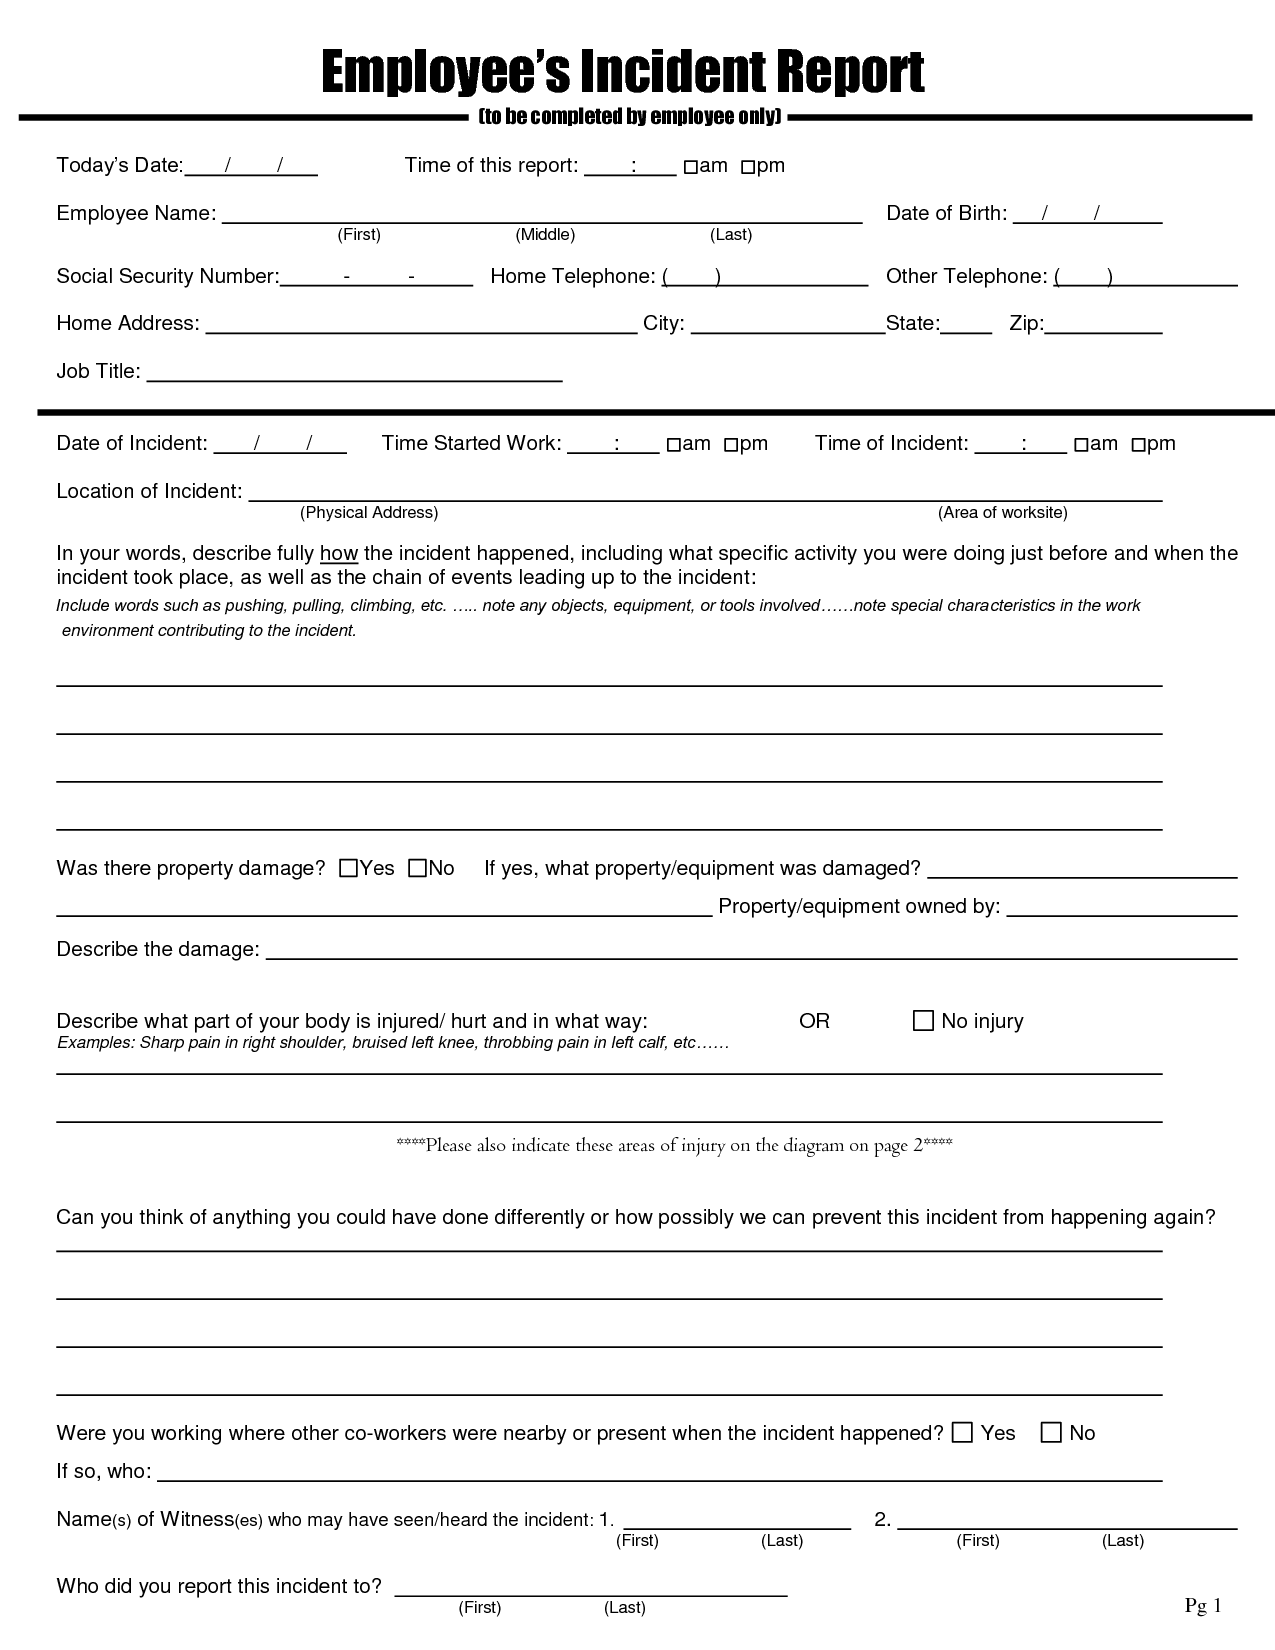 employee injury report form template